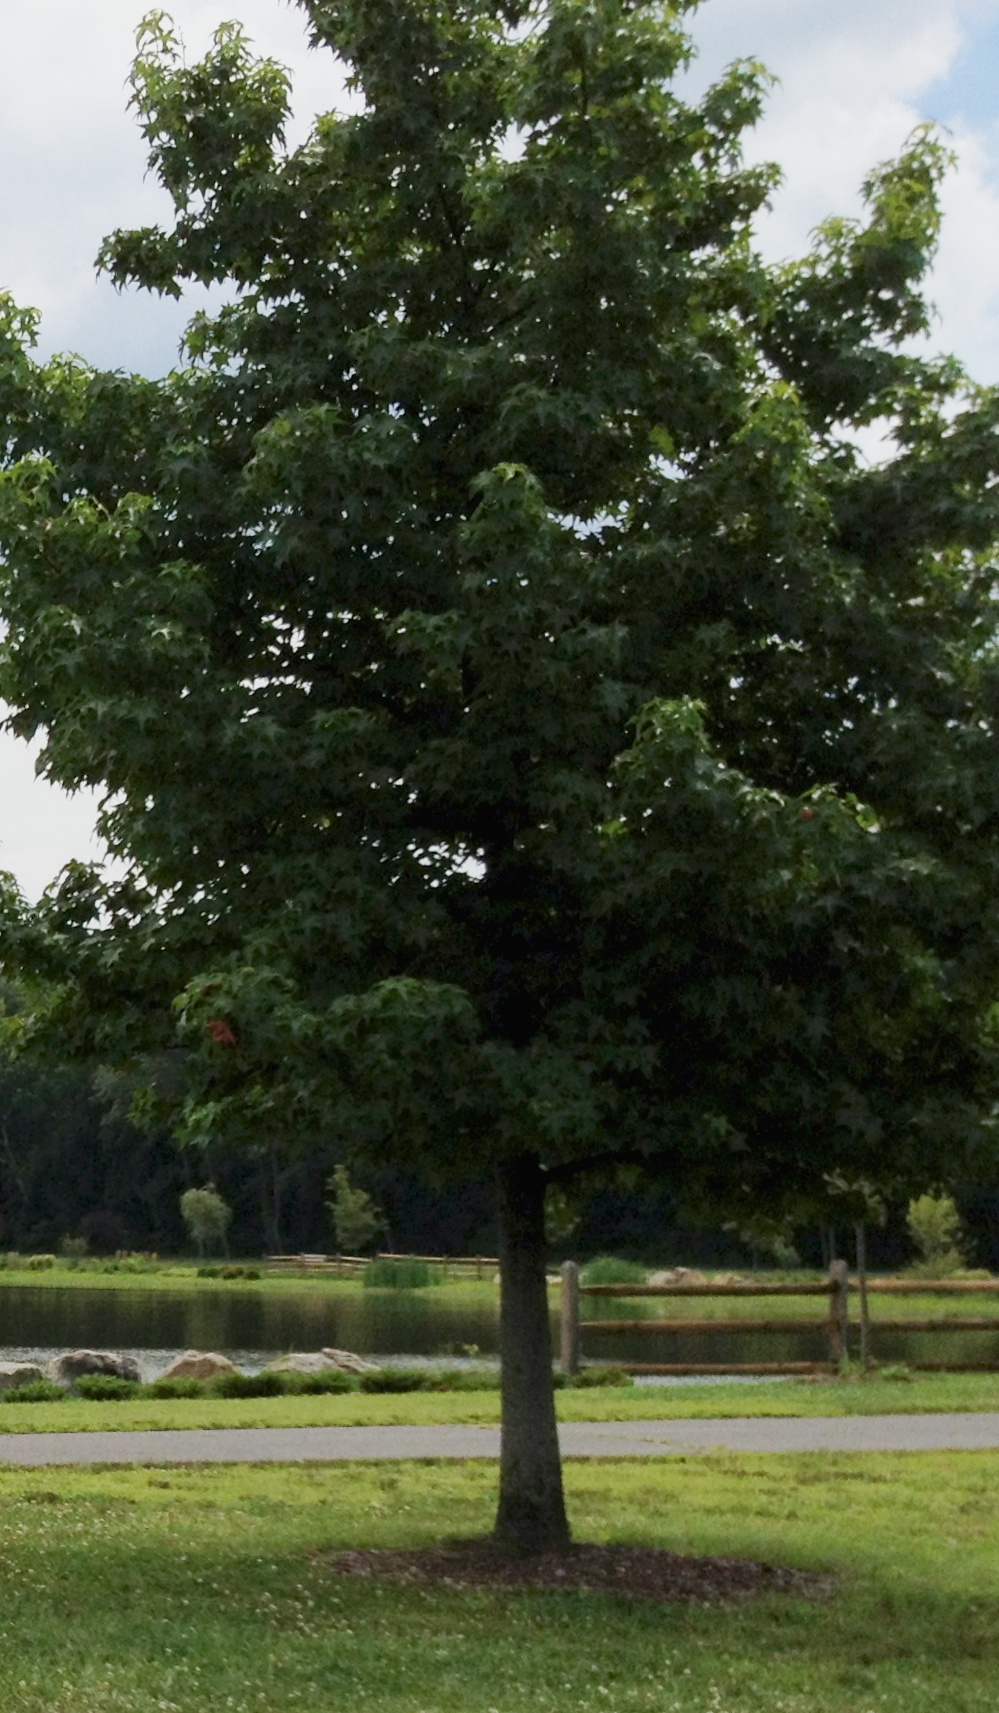 Tree Planting Tips - Tree Resolutions, Trees & Urban Forestry